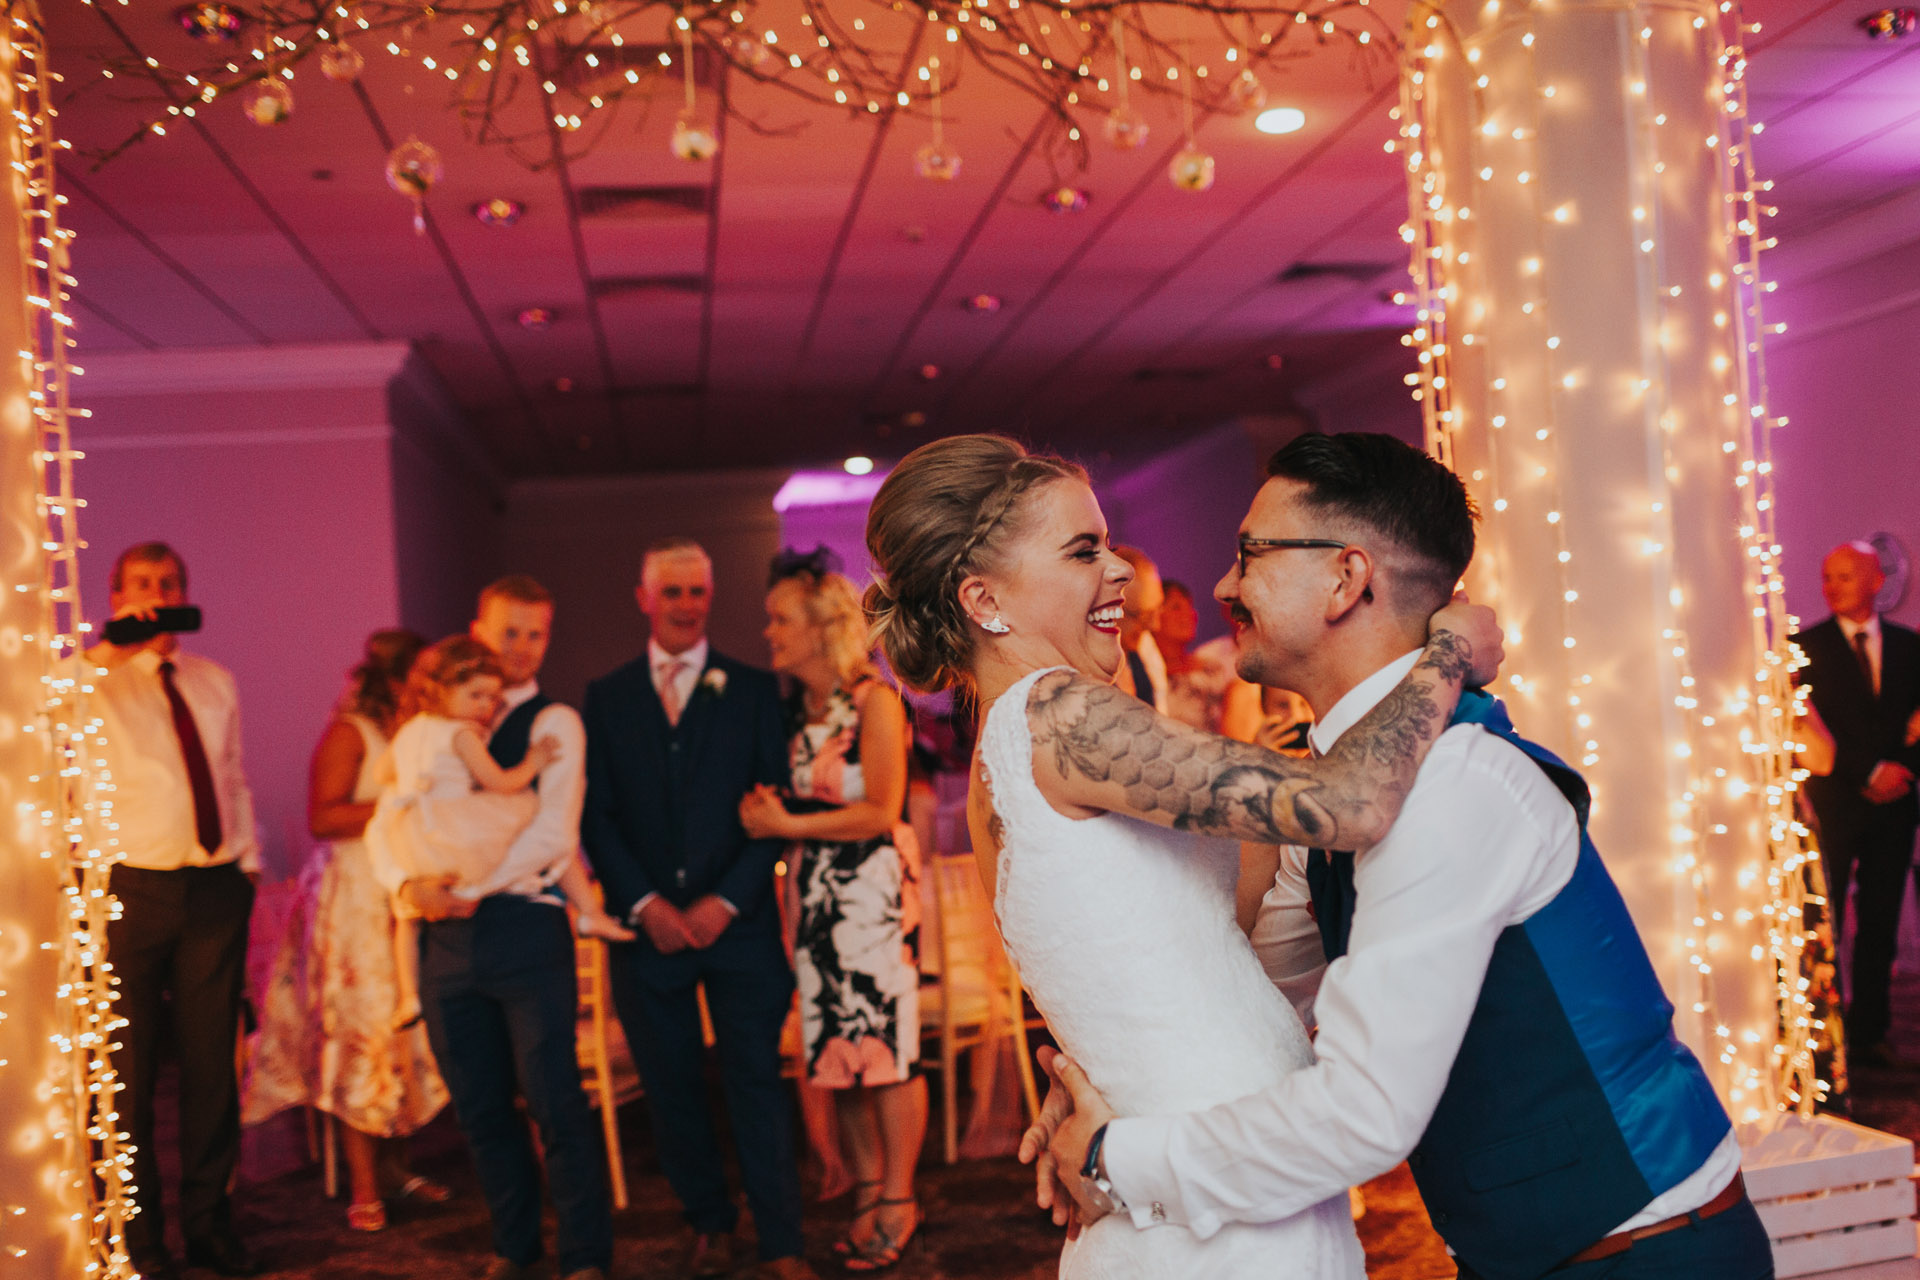 Bride and groom laugh together during first dance.